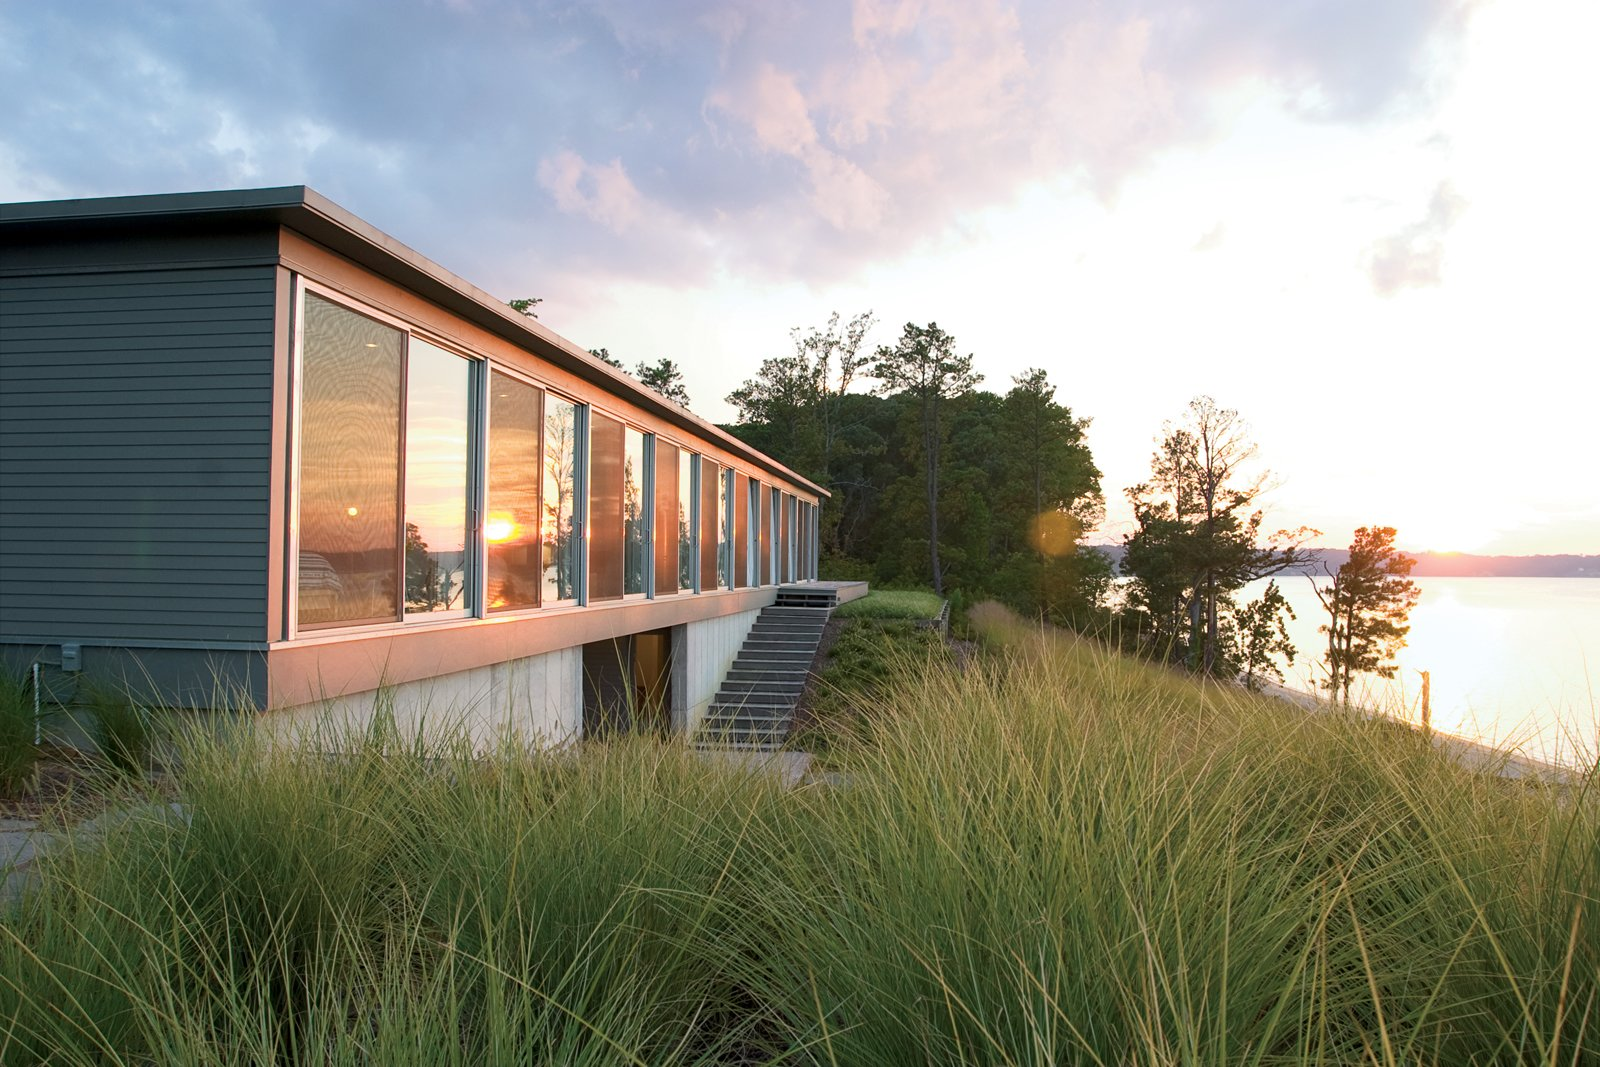 """Exterior, House Building Type, Wood Siding Material, Concrete Siding Material, and Metal Siding Material Ziger/Snead Architects constructed this ode to rowing in rural Virginia for a Baltimore couple who share a love of sculling. """"Everywhere in the house you can see the moment where land meets water,"""" says Douglas Bothner, an associate at the firm.  Photo 2 of 2 in Row House"""